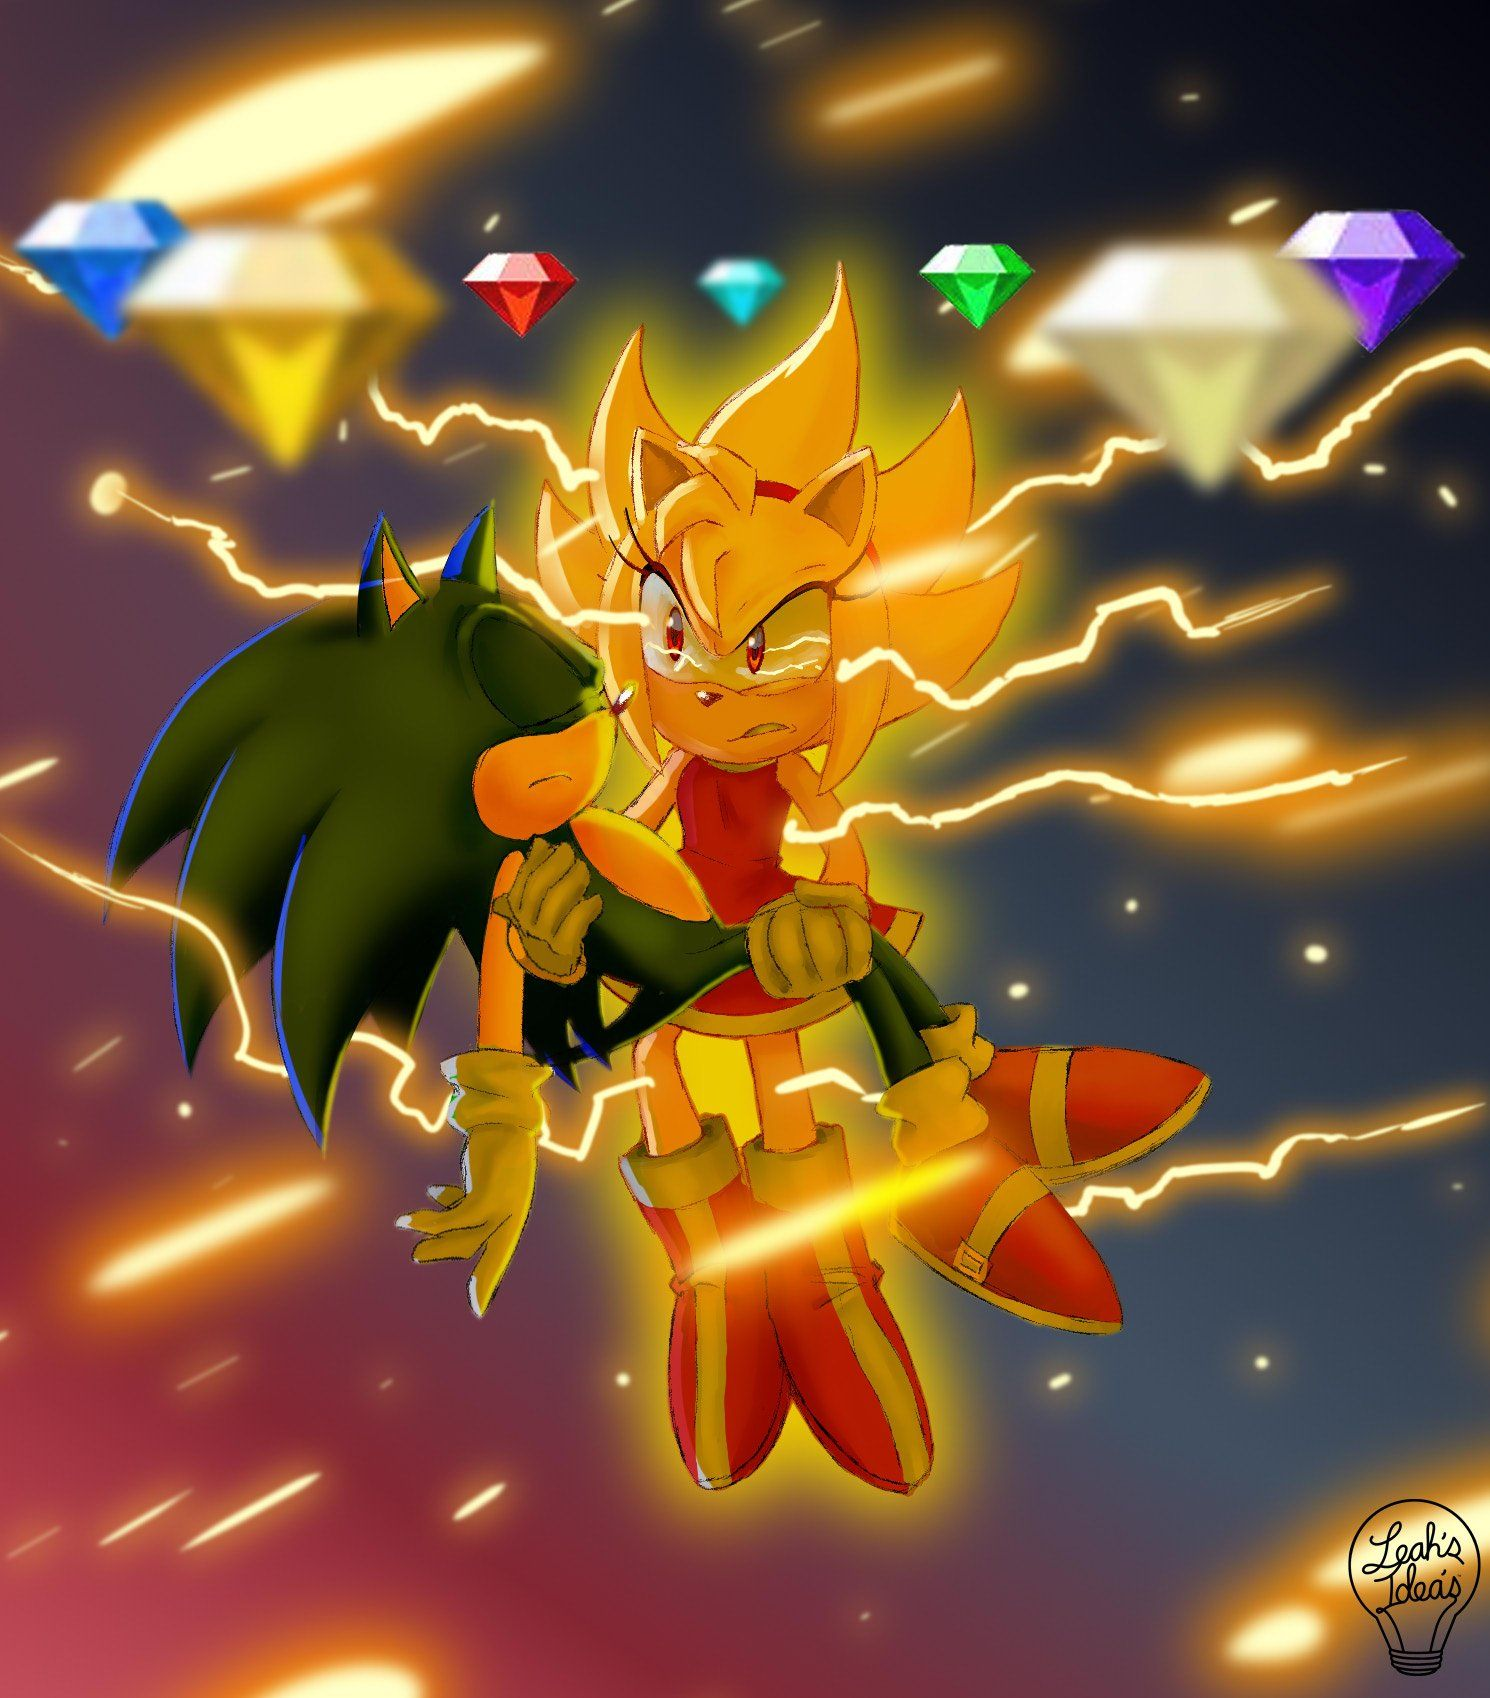 Super Amy Born From Rage Sonic The Hedgehog Hedgehog Art Amy The Hedgehog Sonic Fan Characters